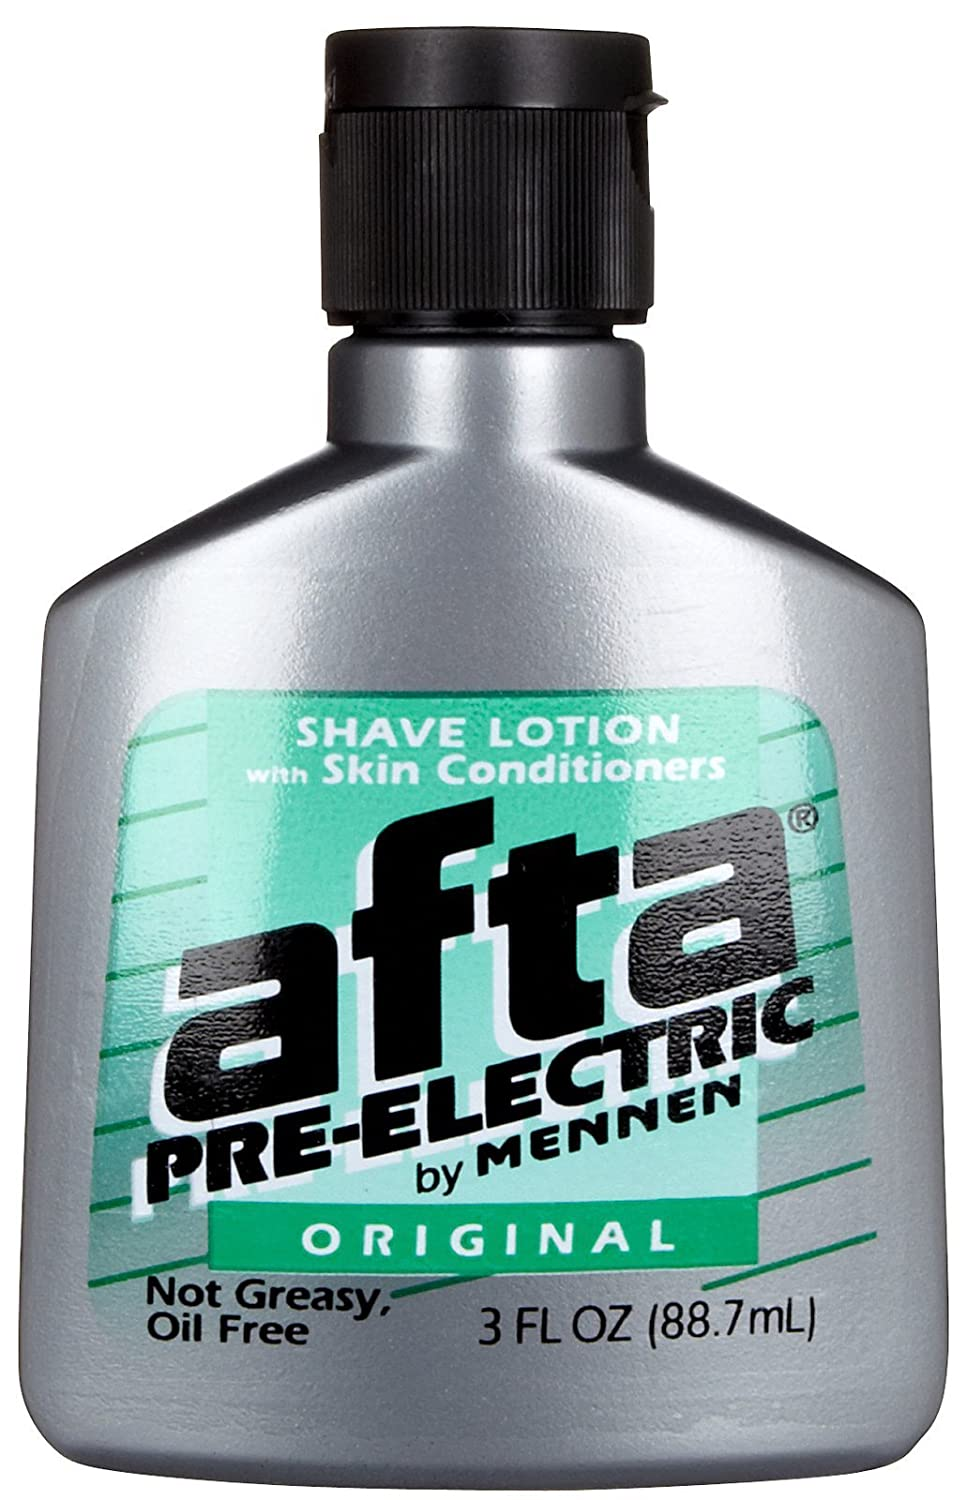 Afta Pre-Electric Shave Lotion With Skin Conditioners Original 3 oz Skin Bracer by Mennen 27656 CP222762